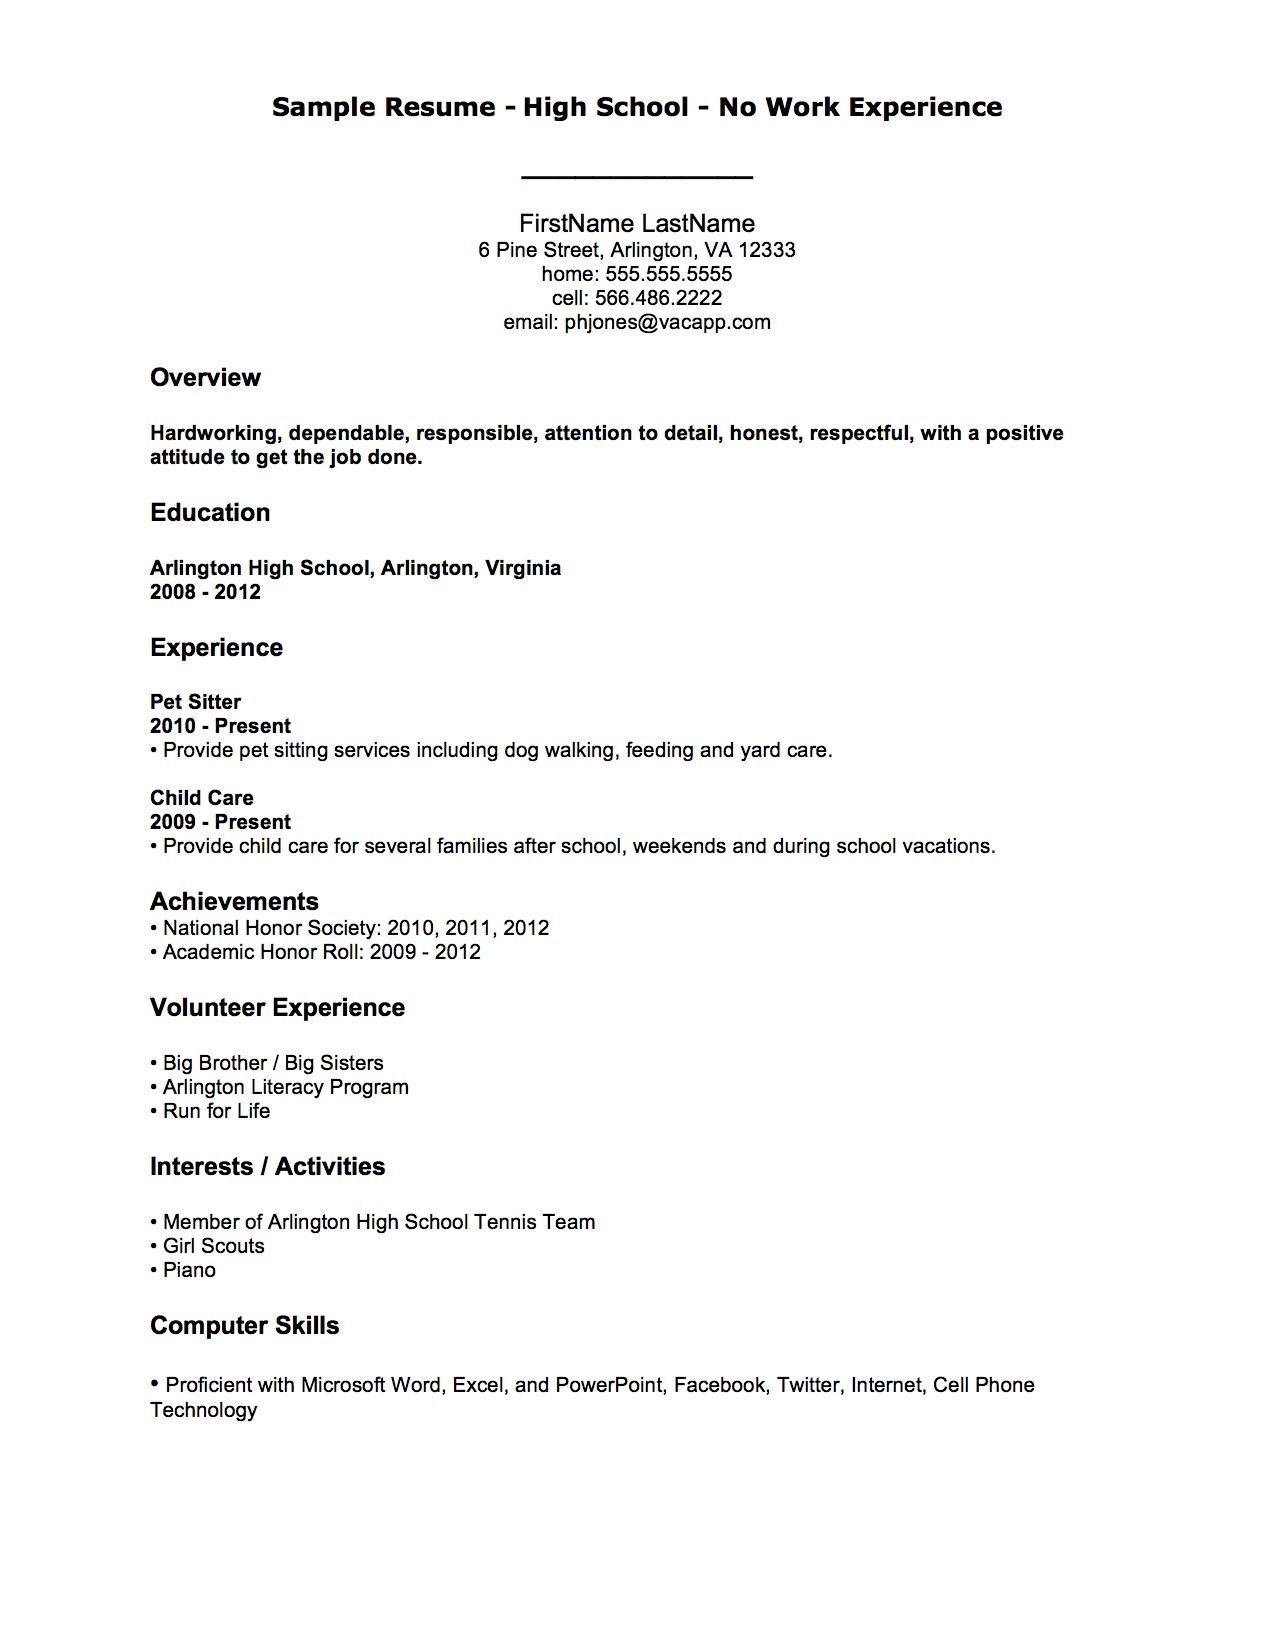 Resume Examples No Job Experience | Resume Examples | Pinterest ...